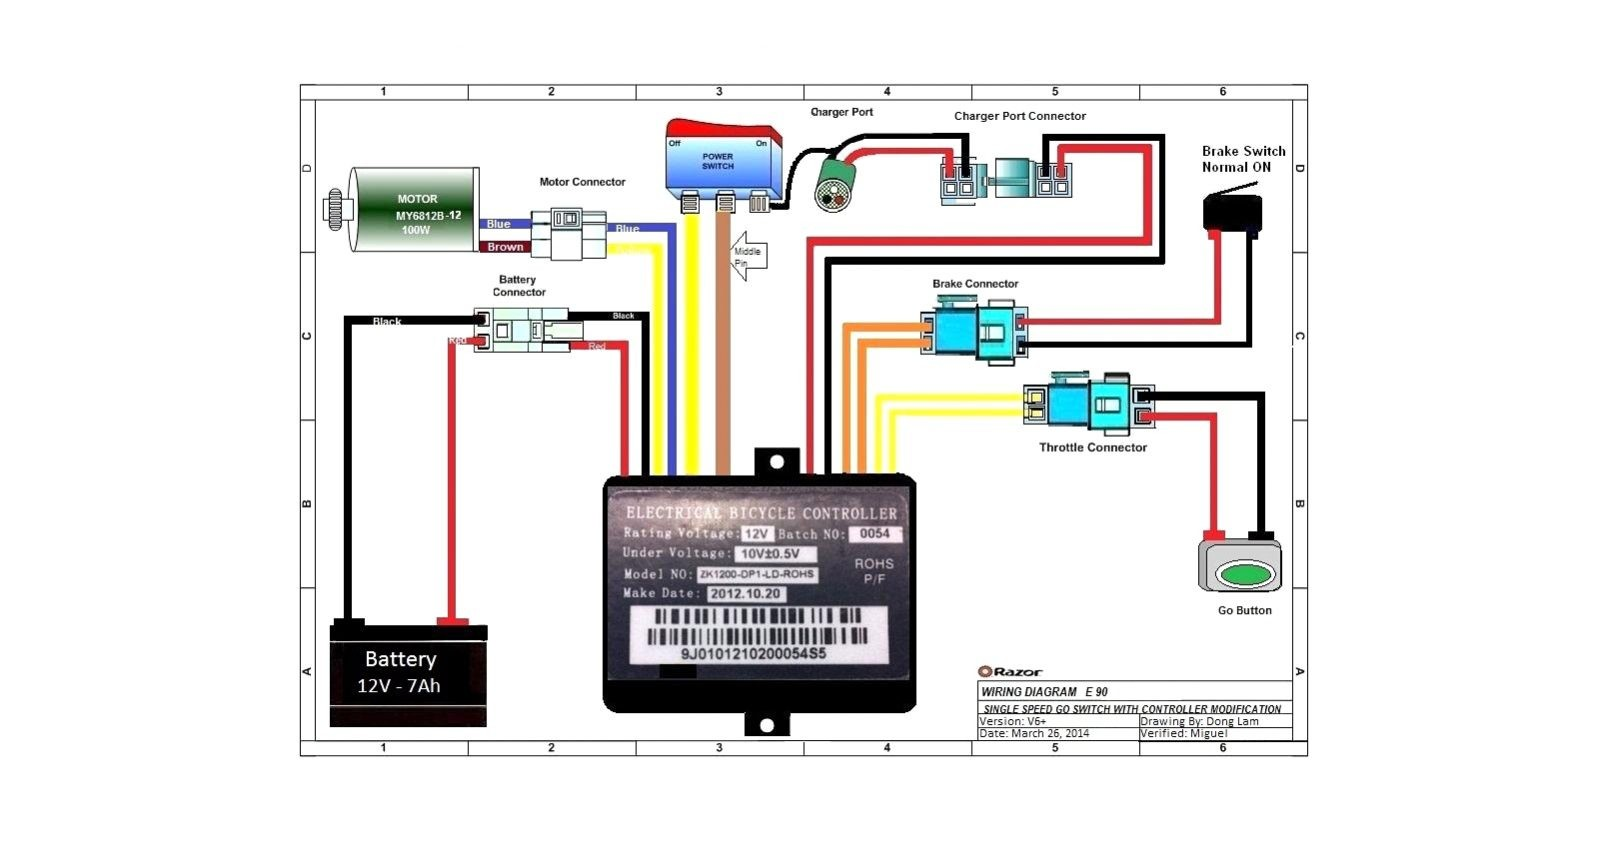 Wiring Diagram V W Electric Polaris Ranger Wiring Diagram - Electric bicycle controller wiring diagram